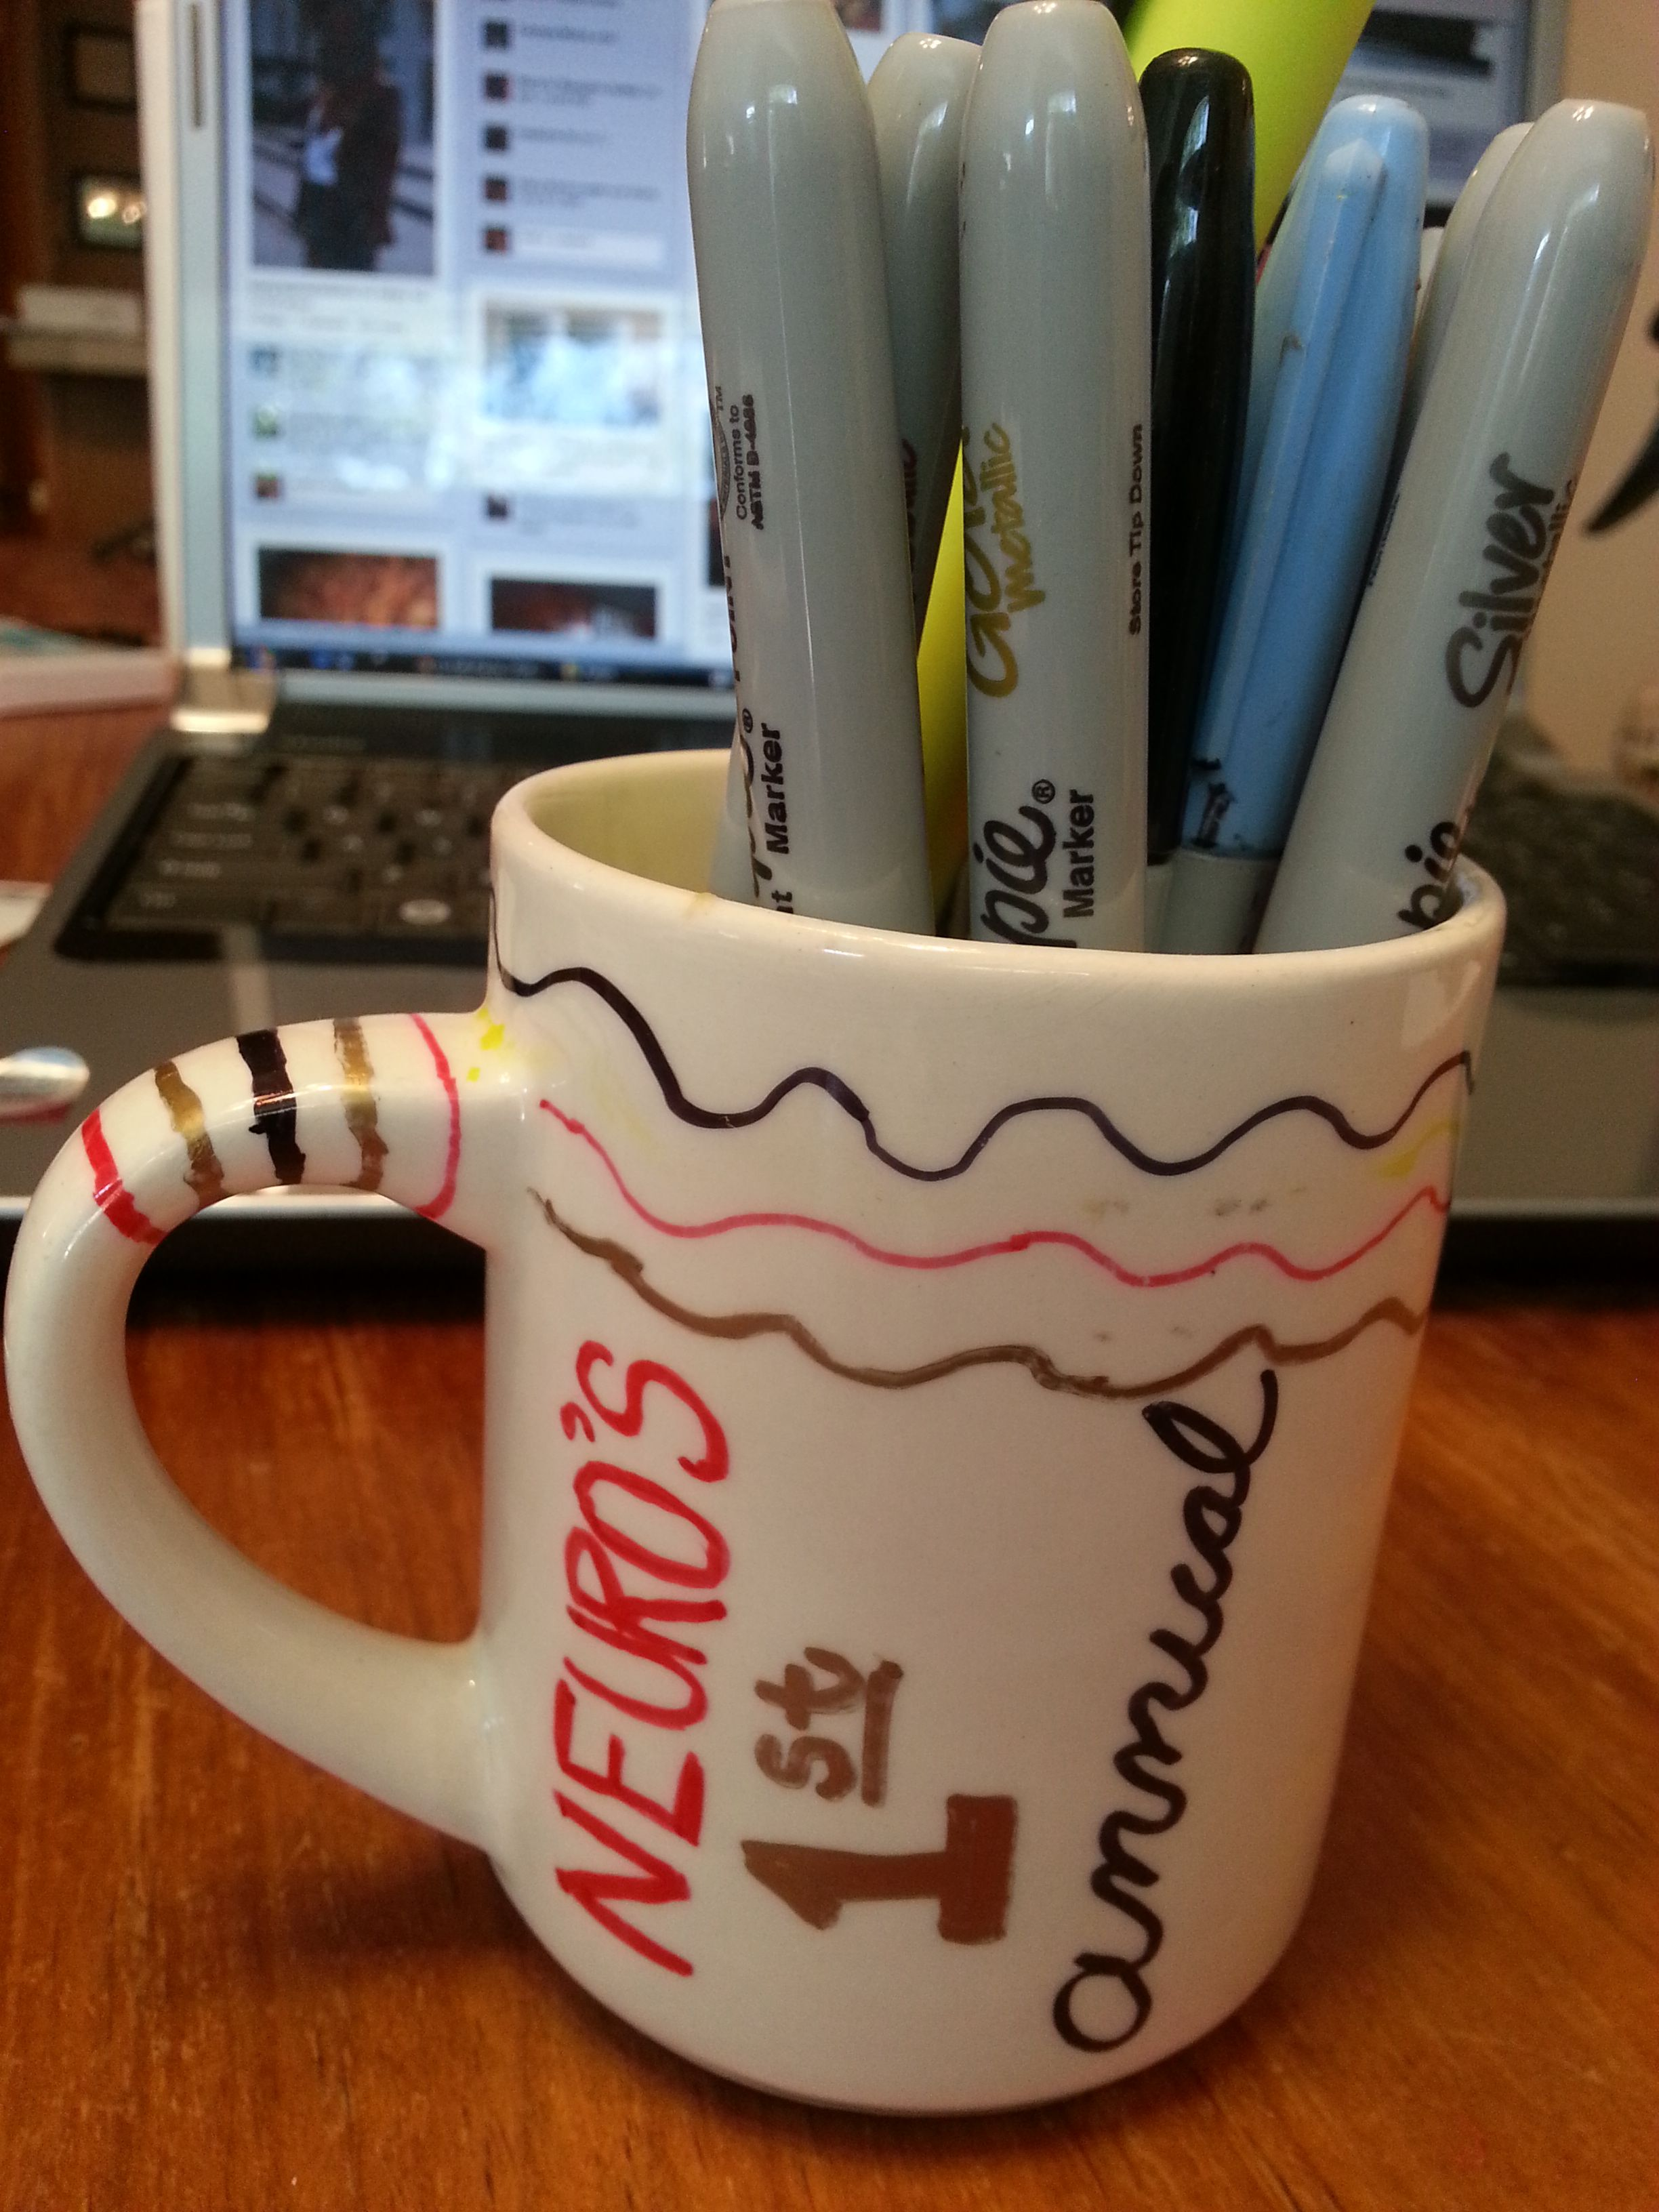 This was the only one I didn't give away for door prizes at my 2012 Cy-Hawk viewing party.  The others were a lot cooler. Got white coffee cups for 14 cents each at Salvation Army and they turned out awesome!  Gonna make more for Christmas gifts!